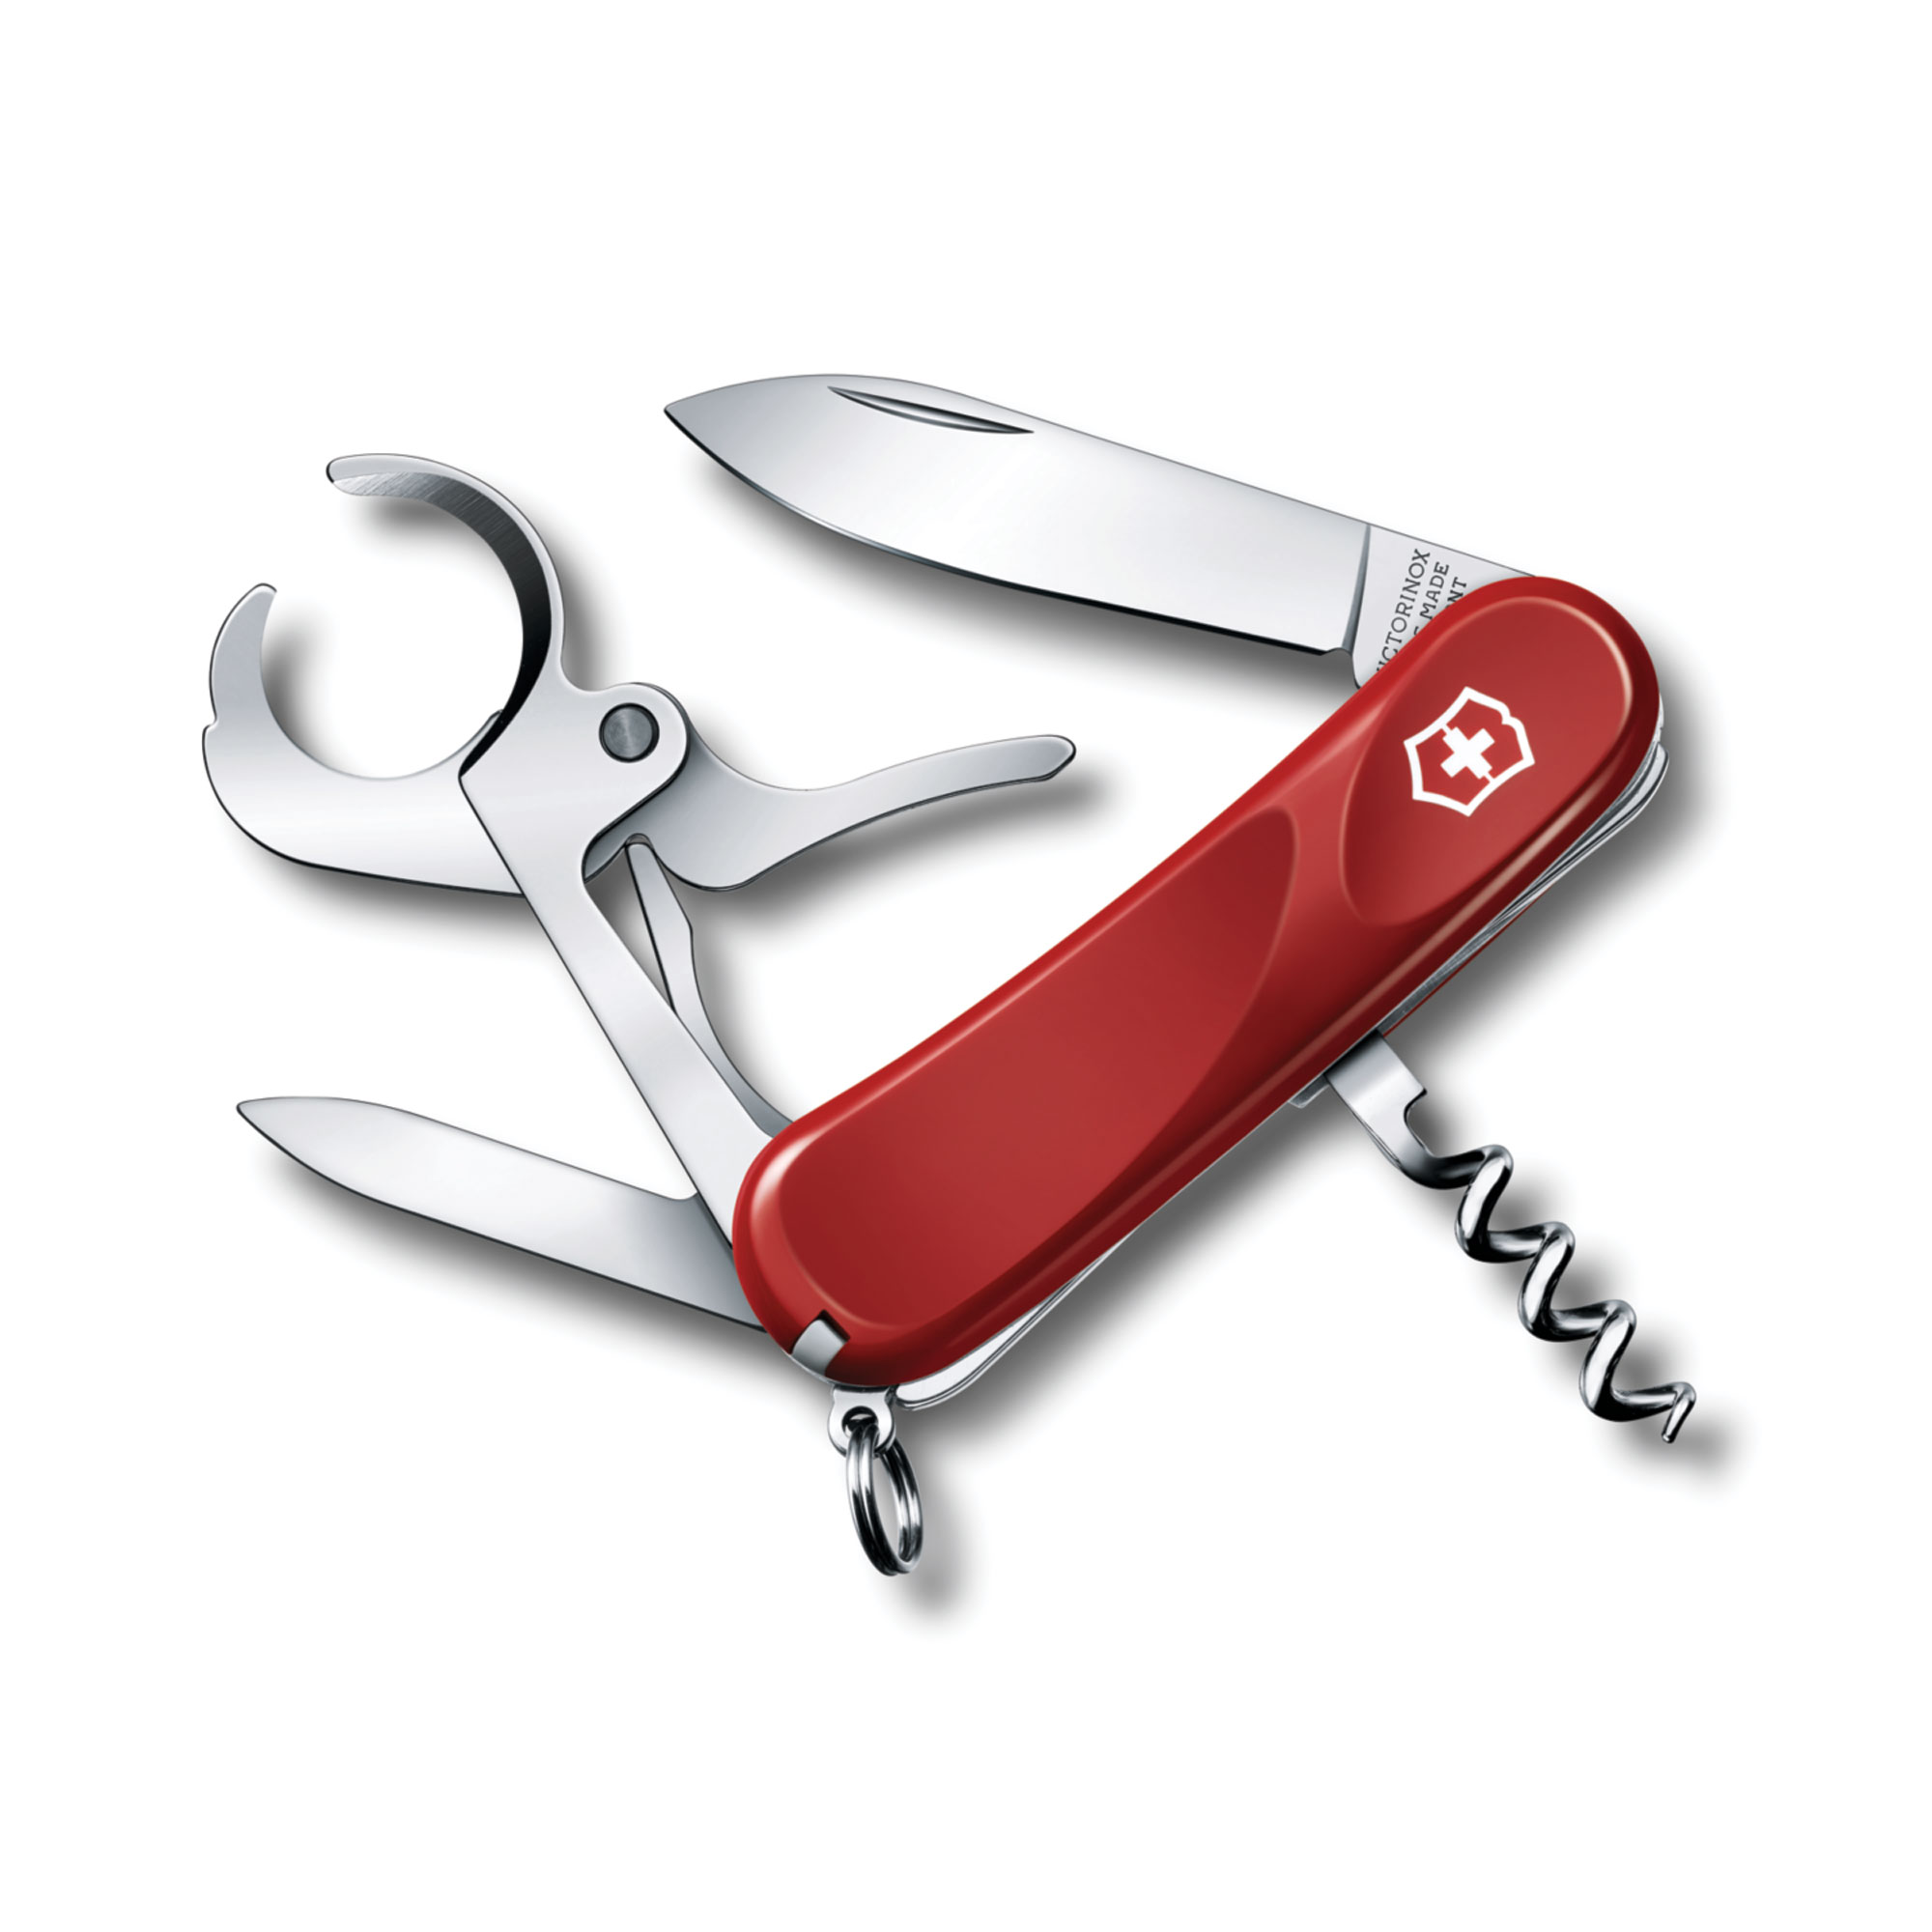 Victorinox Swiss Army Cigar 36 Pocket Knife With Cigar